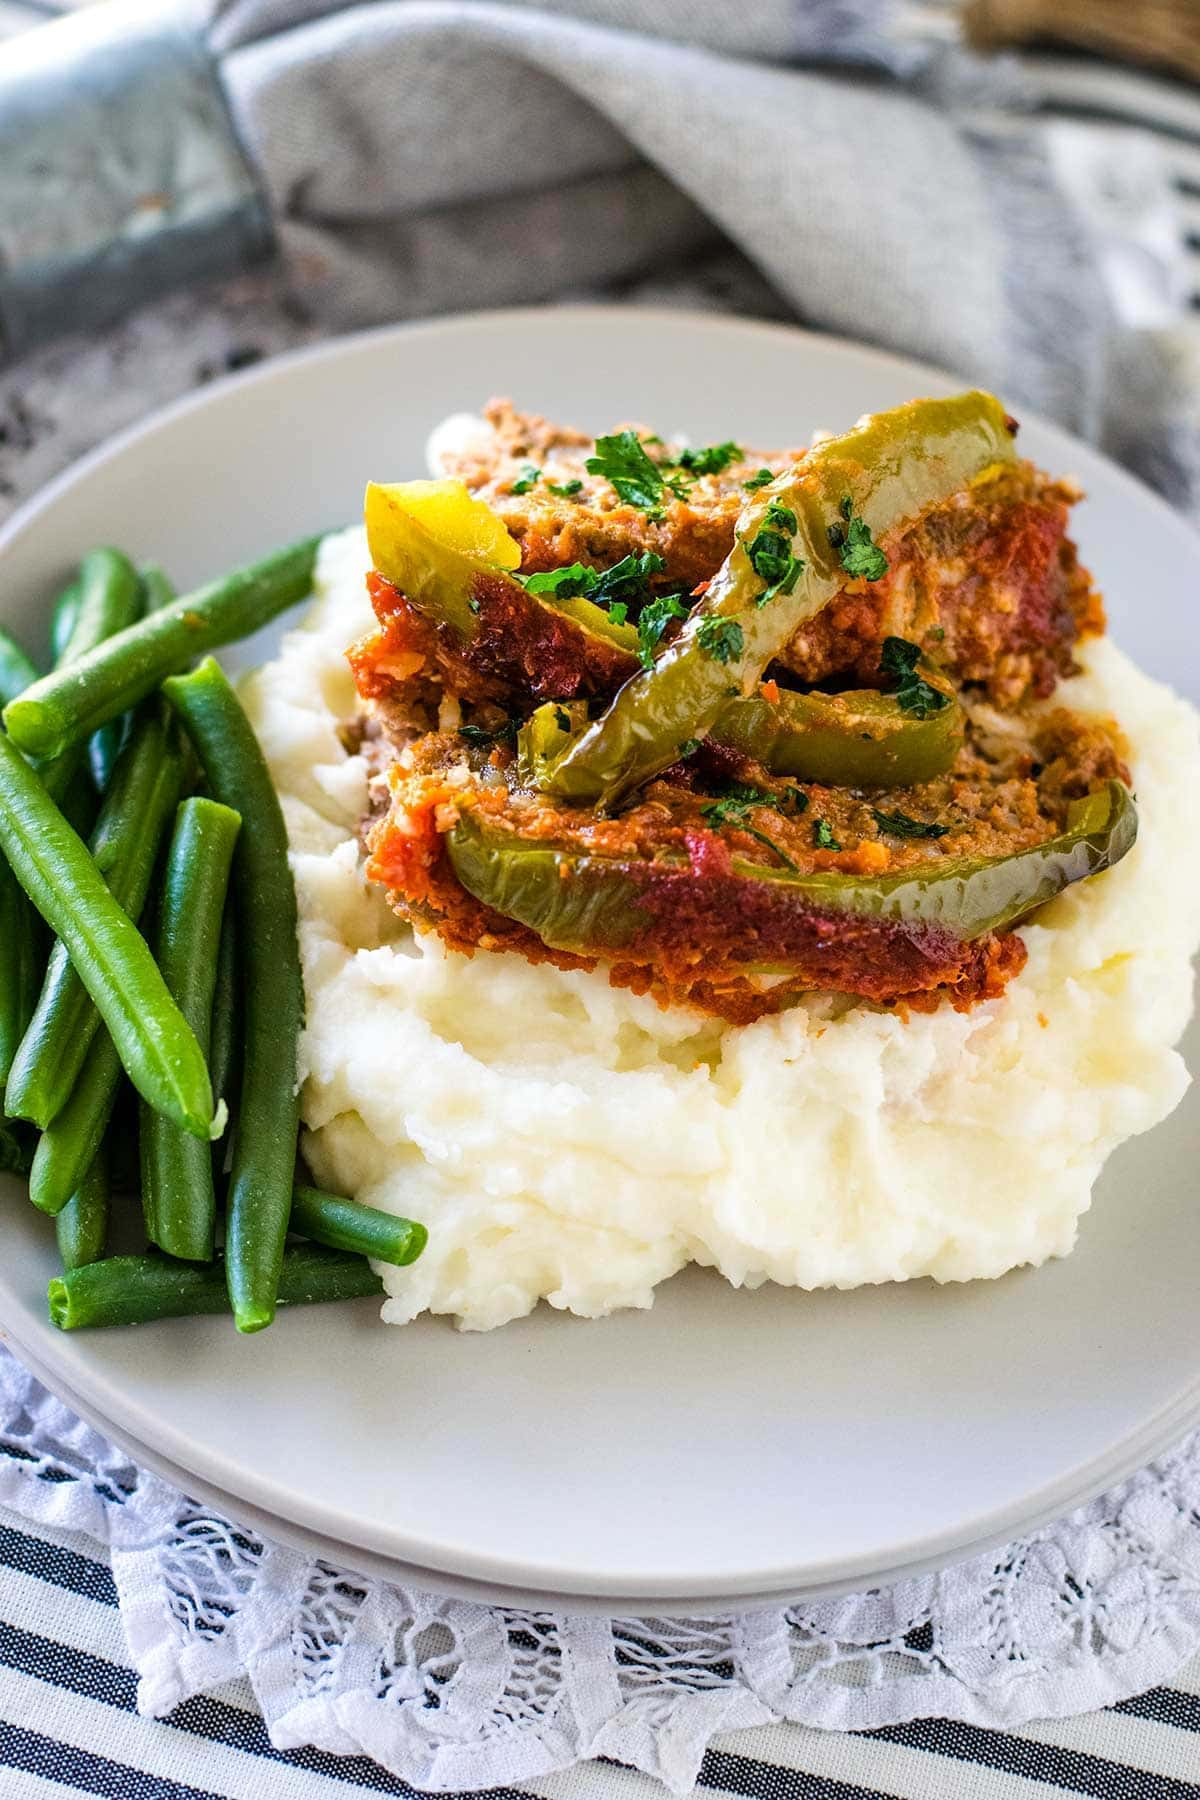 Slices of stuffed pepper meatloaf on a bed of creamy mashed potatoes with a side of fresh green beans.